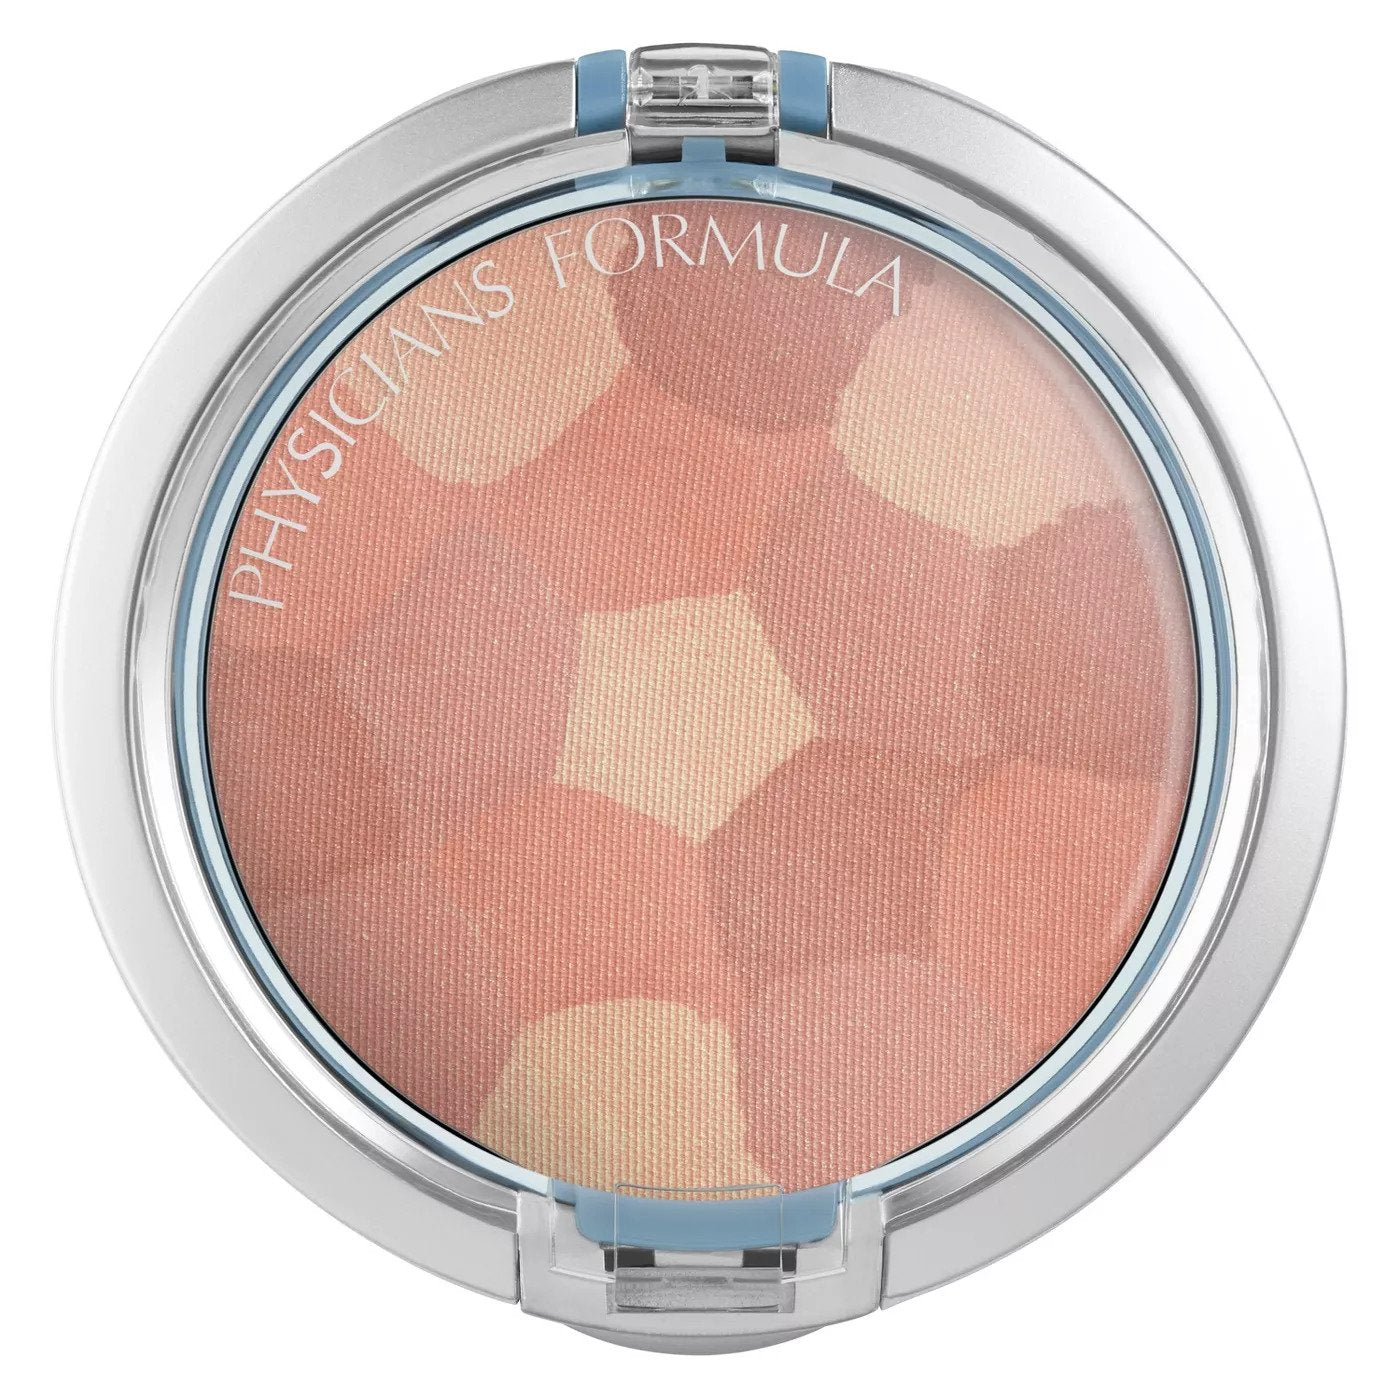 Physician's Formula Multi-Colored Mineral Blush